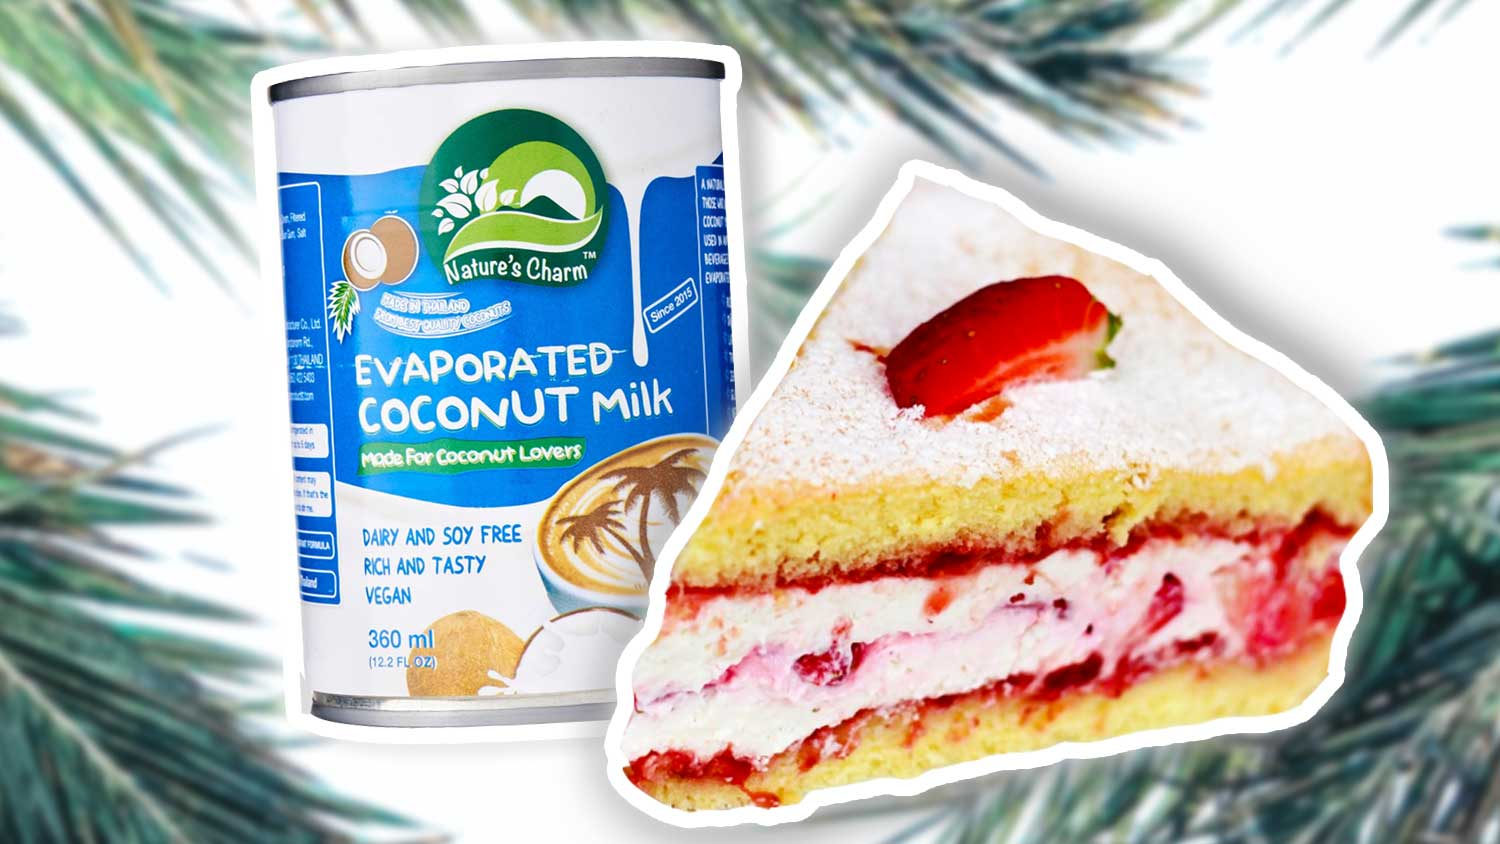 Vegan Evaporated Milk Made From Coconuts Has Arrived